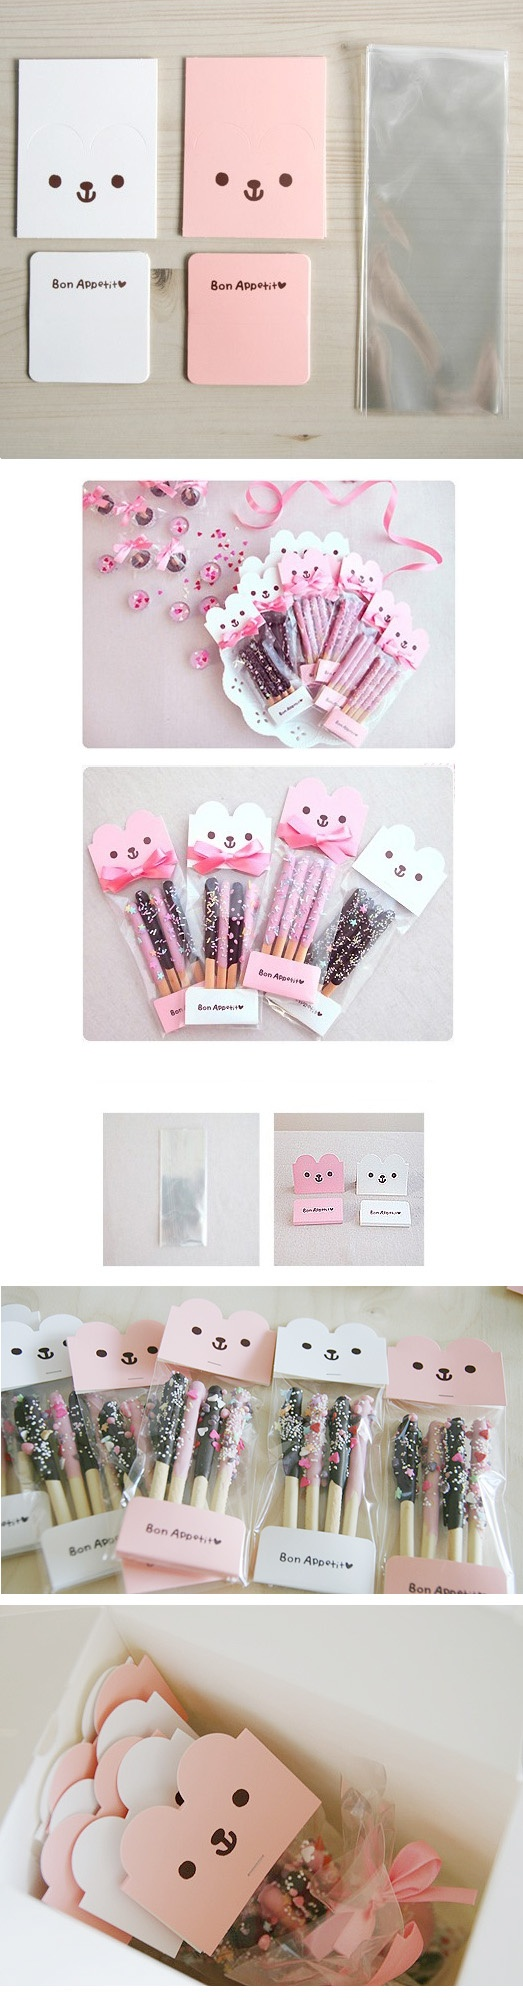 Pepebear header Tag Package(white5+Pink5)